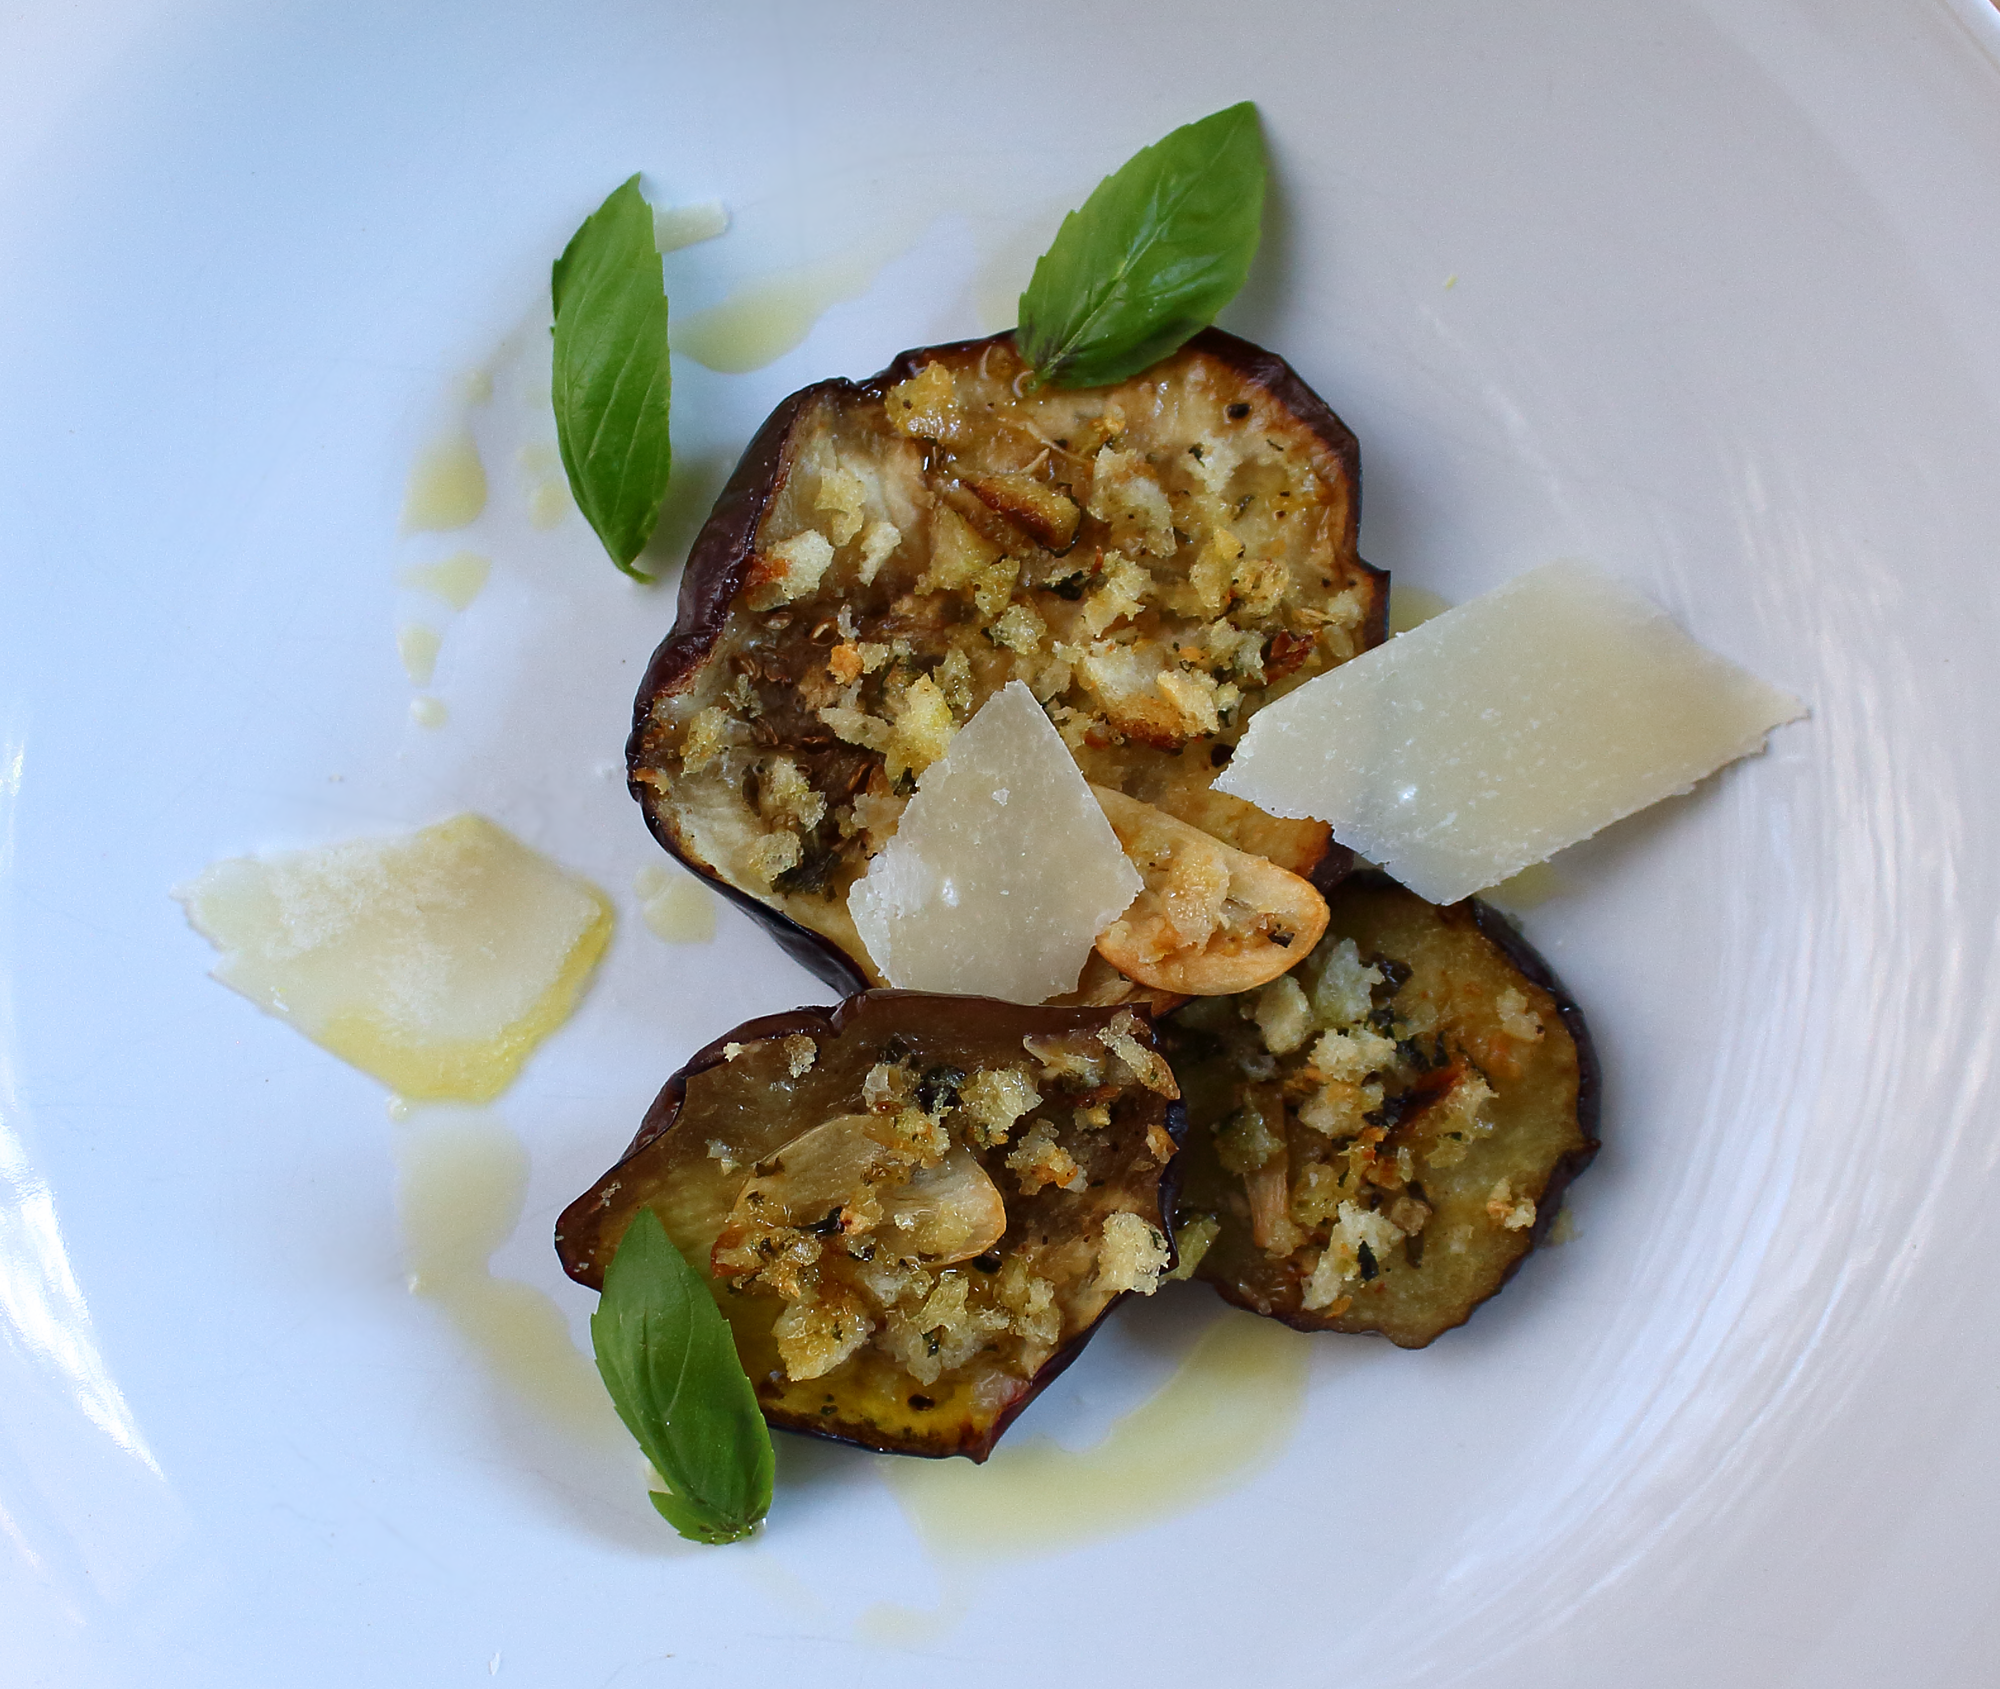 Baked Eggplant with a Basil Breadcrumb Gremolata